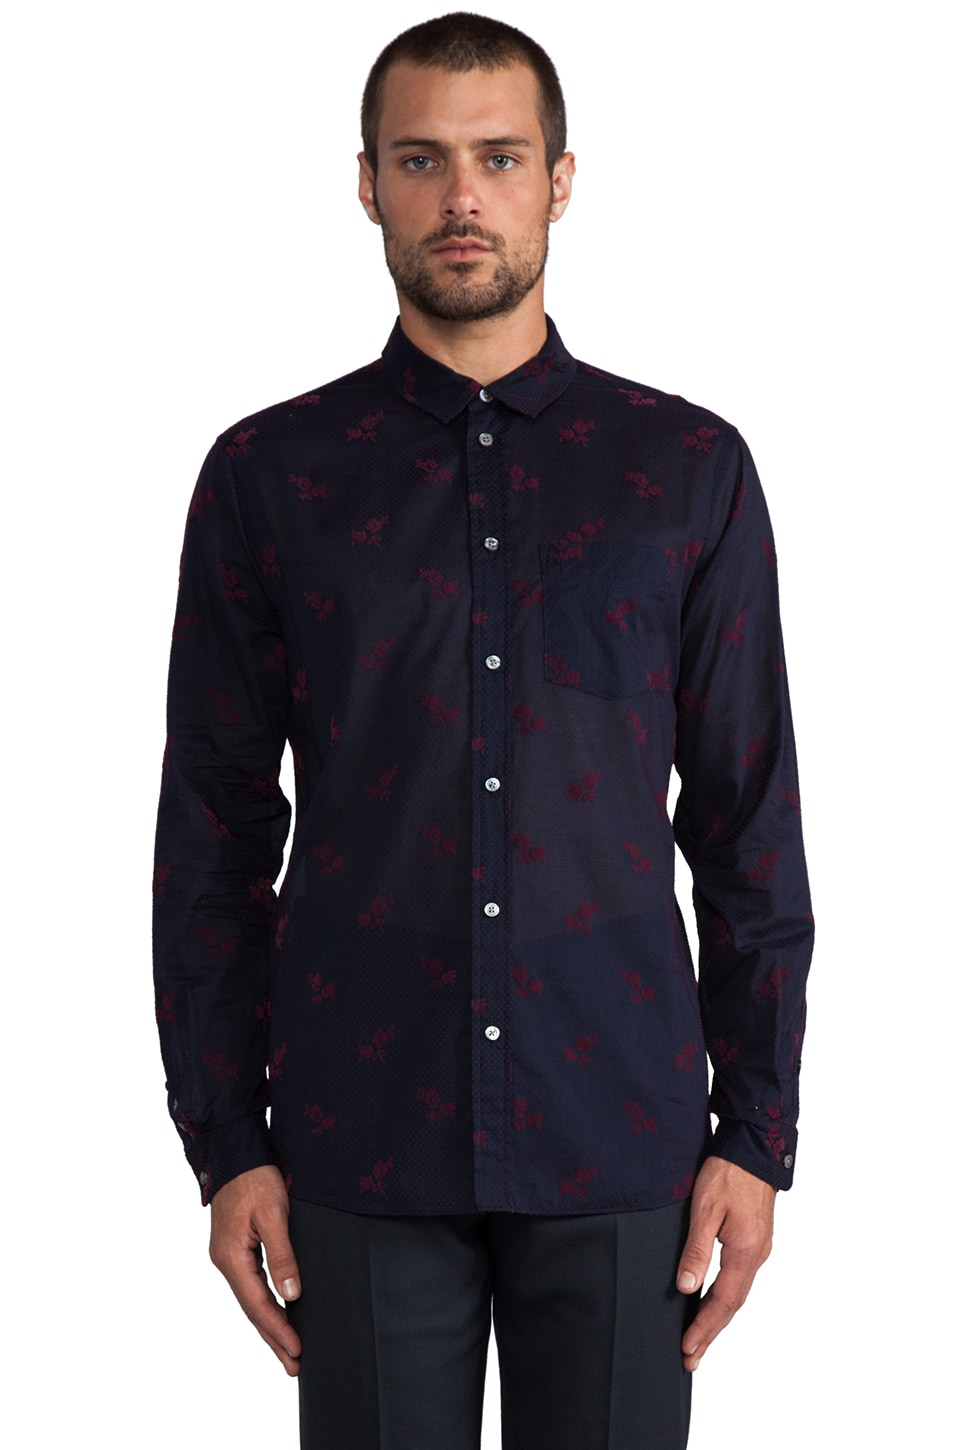 Marc by Marc Jacobs Savannah Print Button Down in Total Eclipse Multi